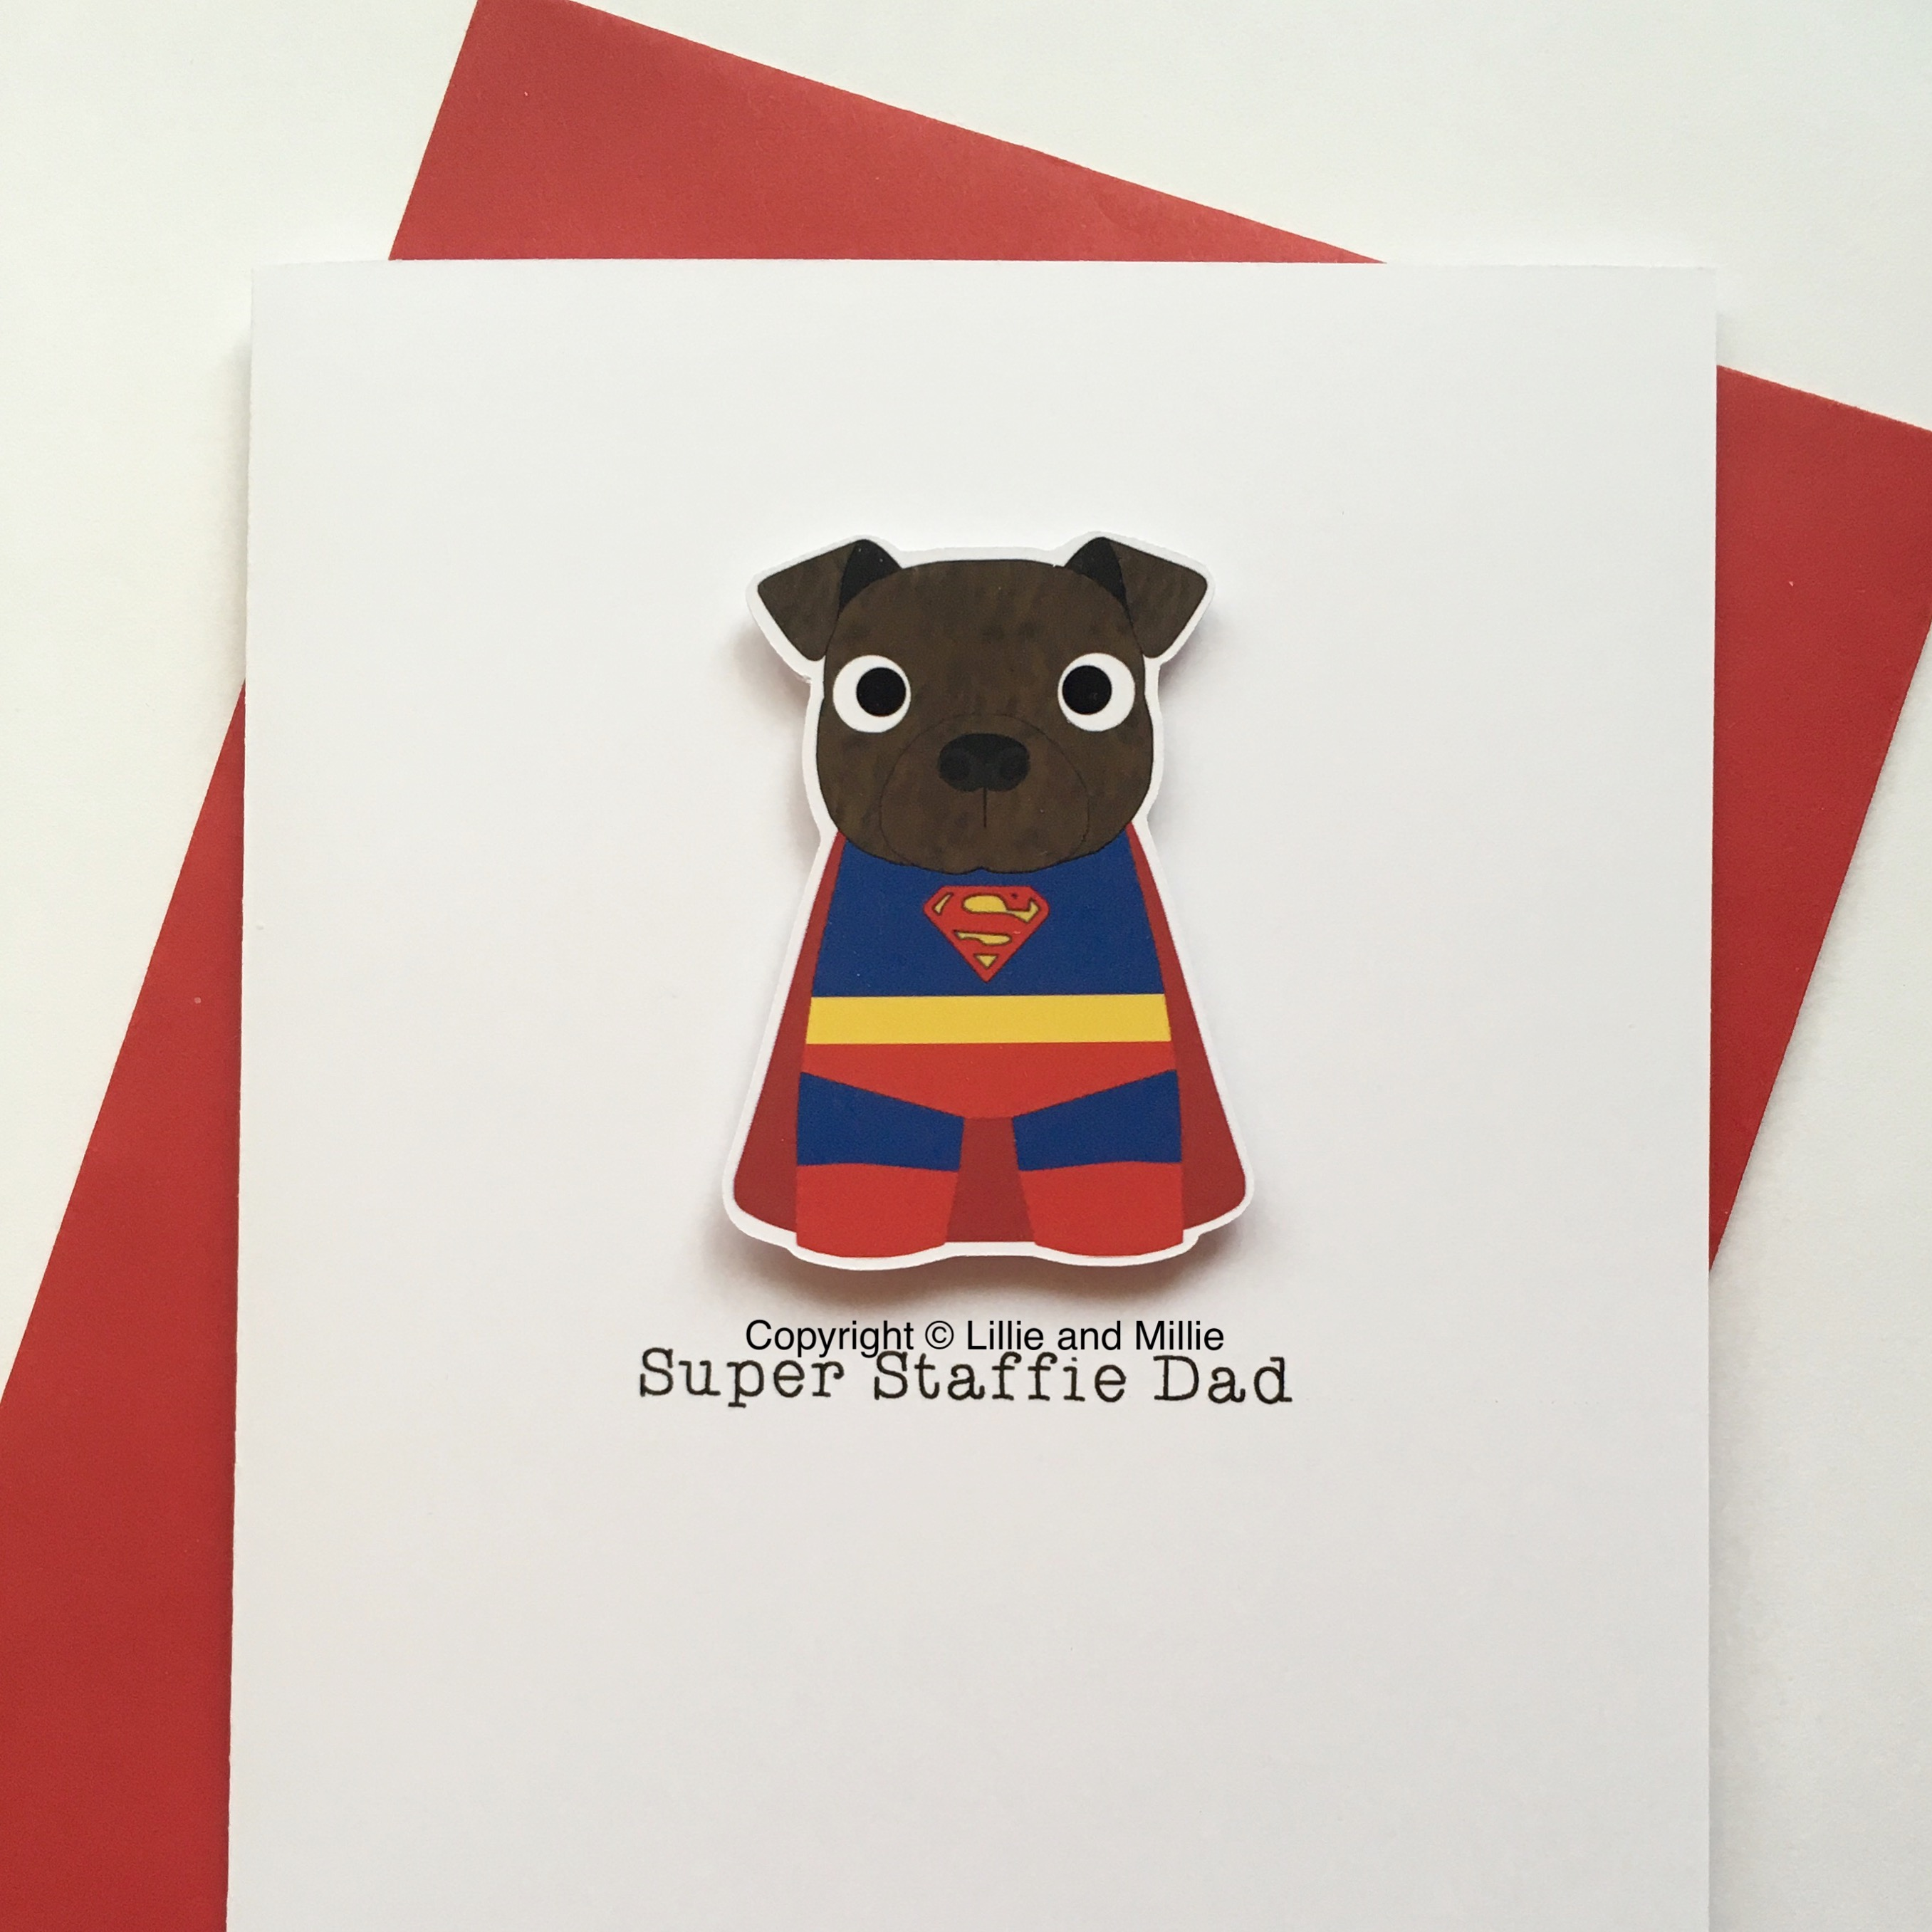 Cute and Cuddly Brindle Super Staffie Dad Card